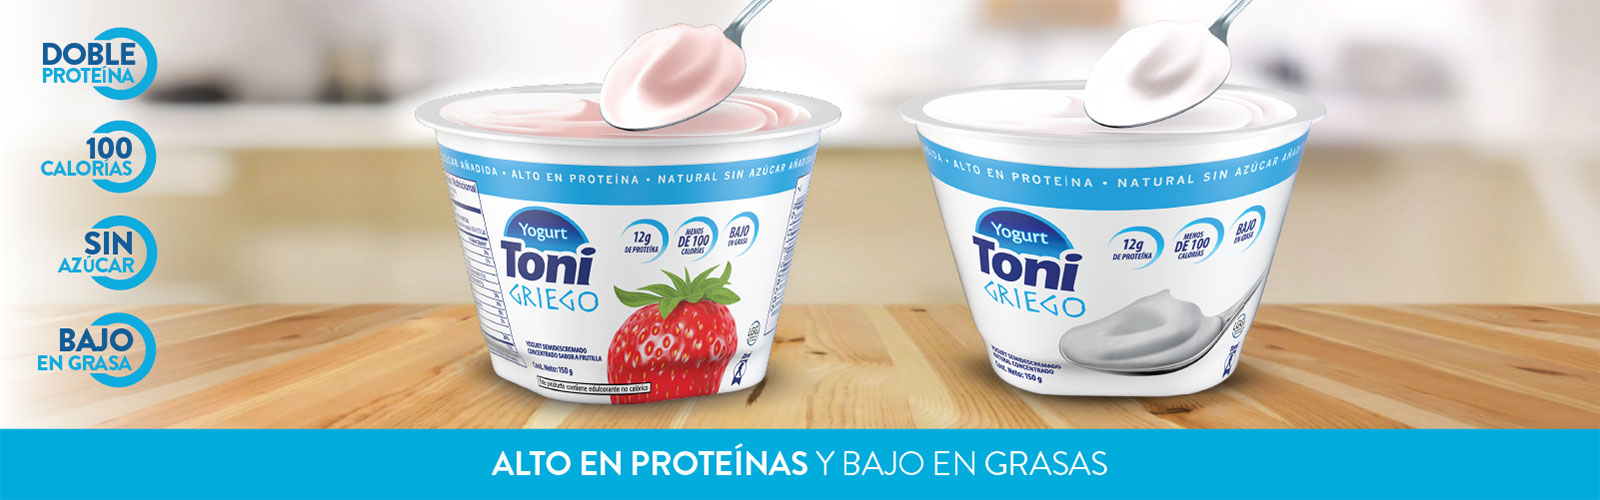 Yogurt Toni Griego